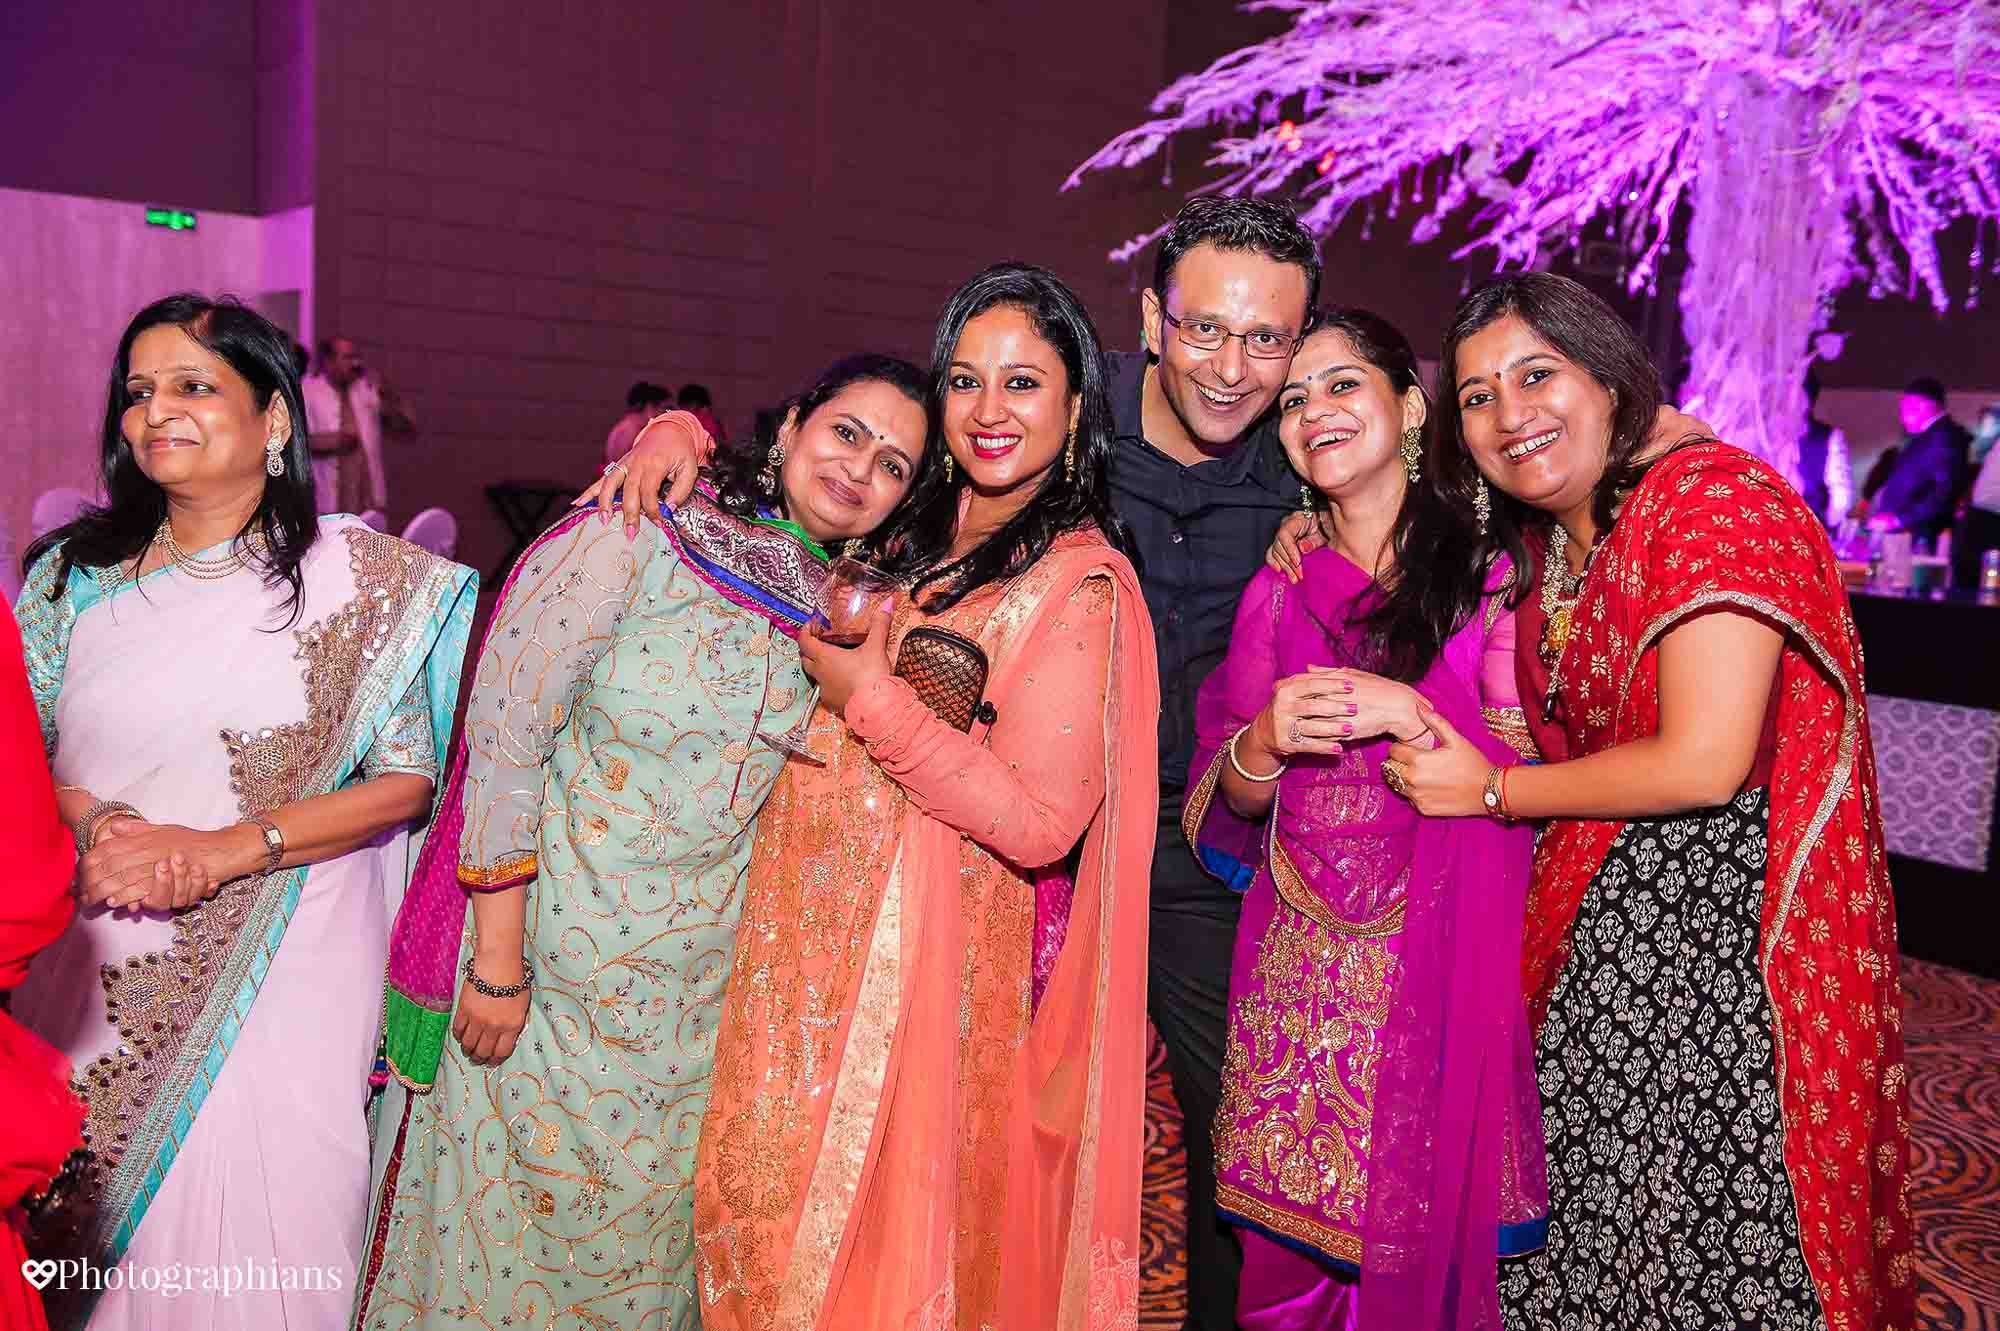 Punjabi_Marwari_Wedding_Kolkata_Photographians_-VIDHI-69